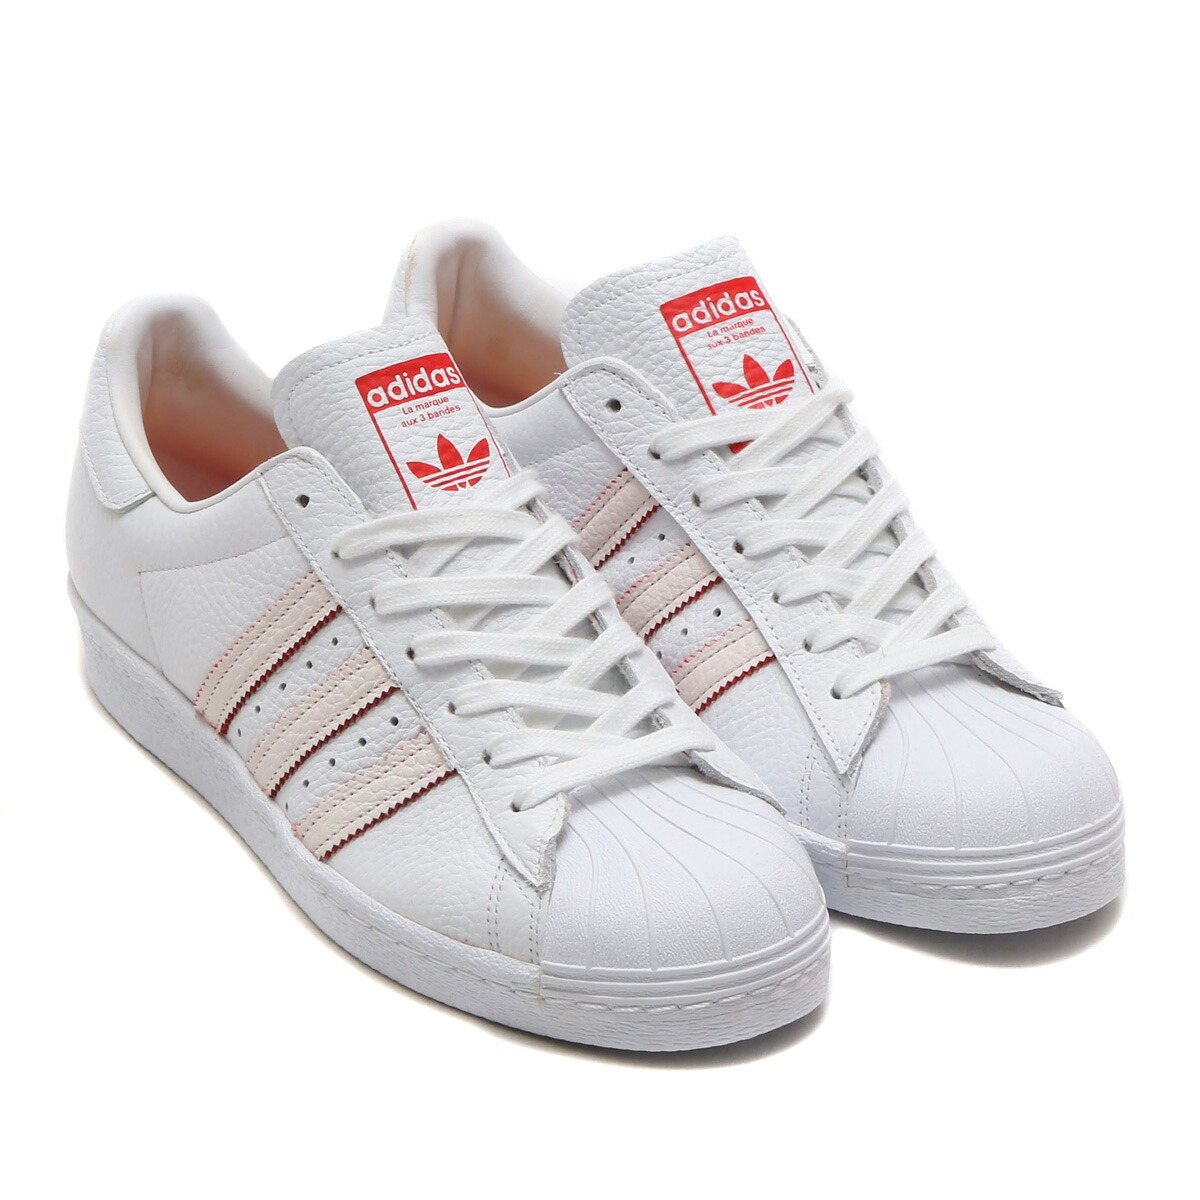 promo code 08e99 21cc2 The low top shoes which were released with all leather specifications in  the 70s. The legendary shoes which embody in a pop culture proud of  popularity not ...